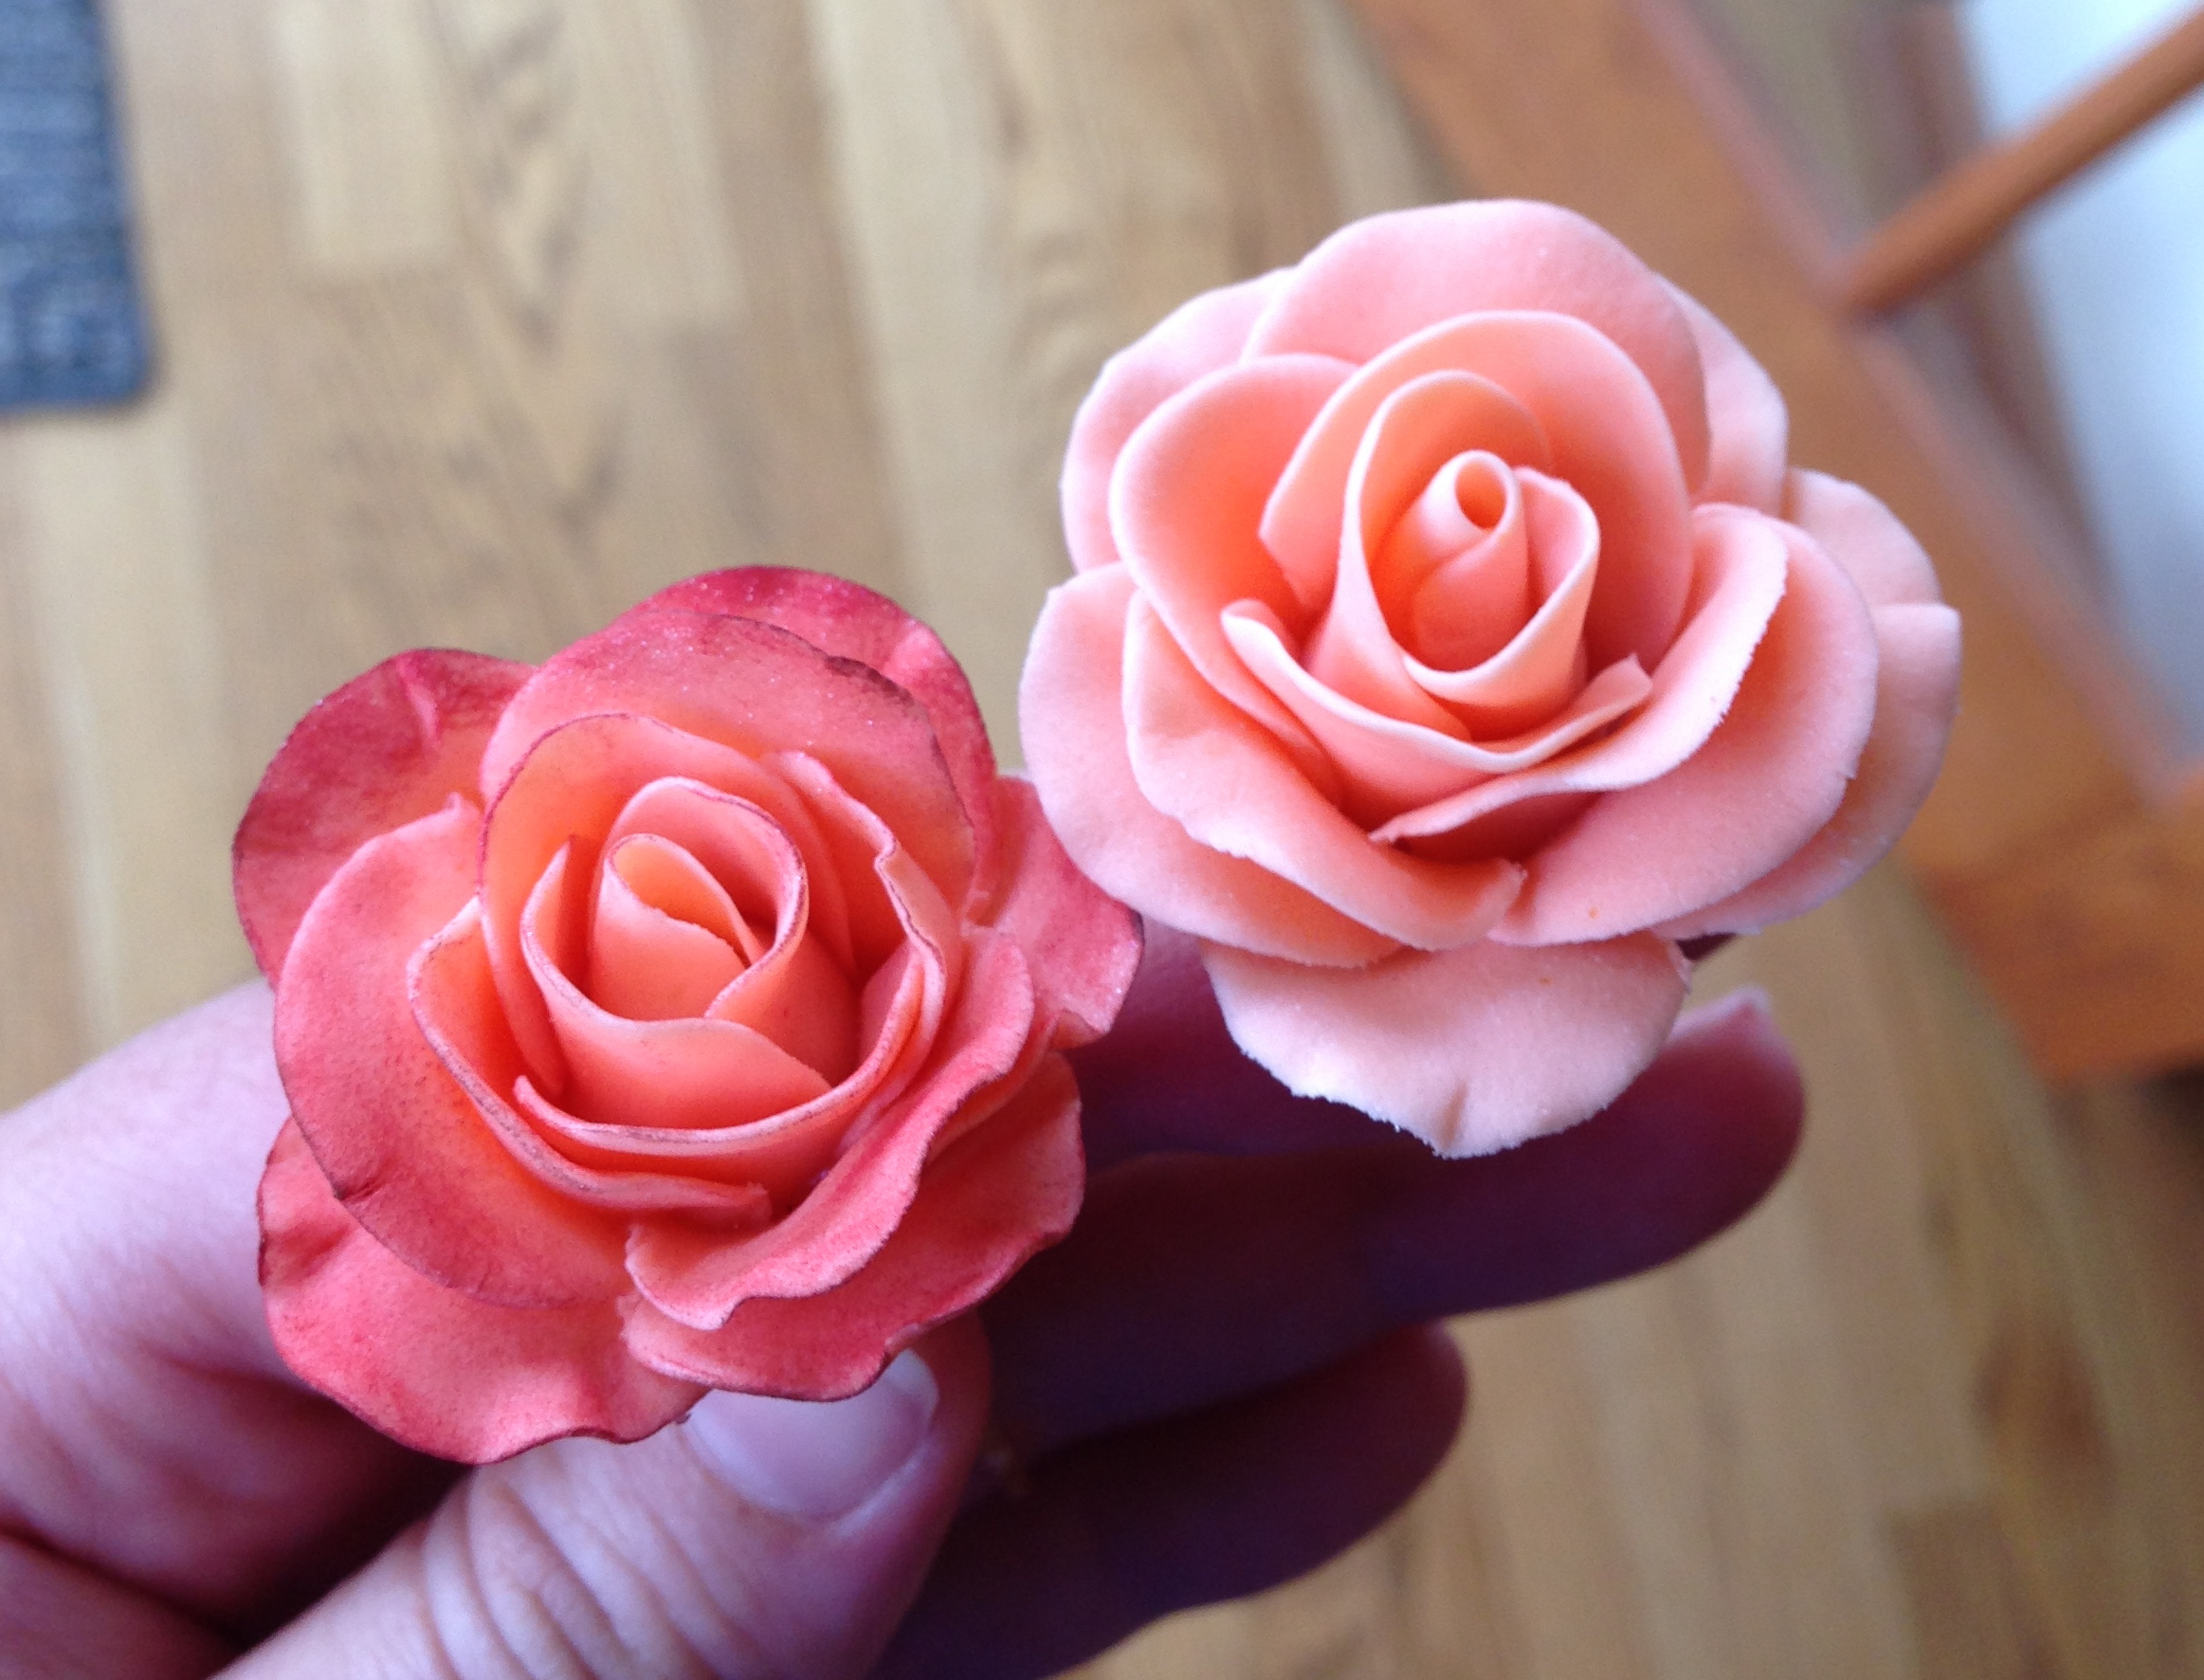 Virtual ROSES Bouquets and Free Postcards at iFlowers